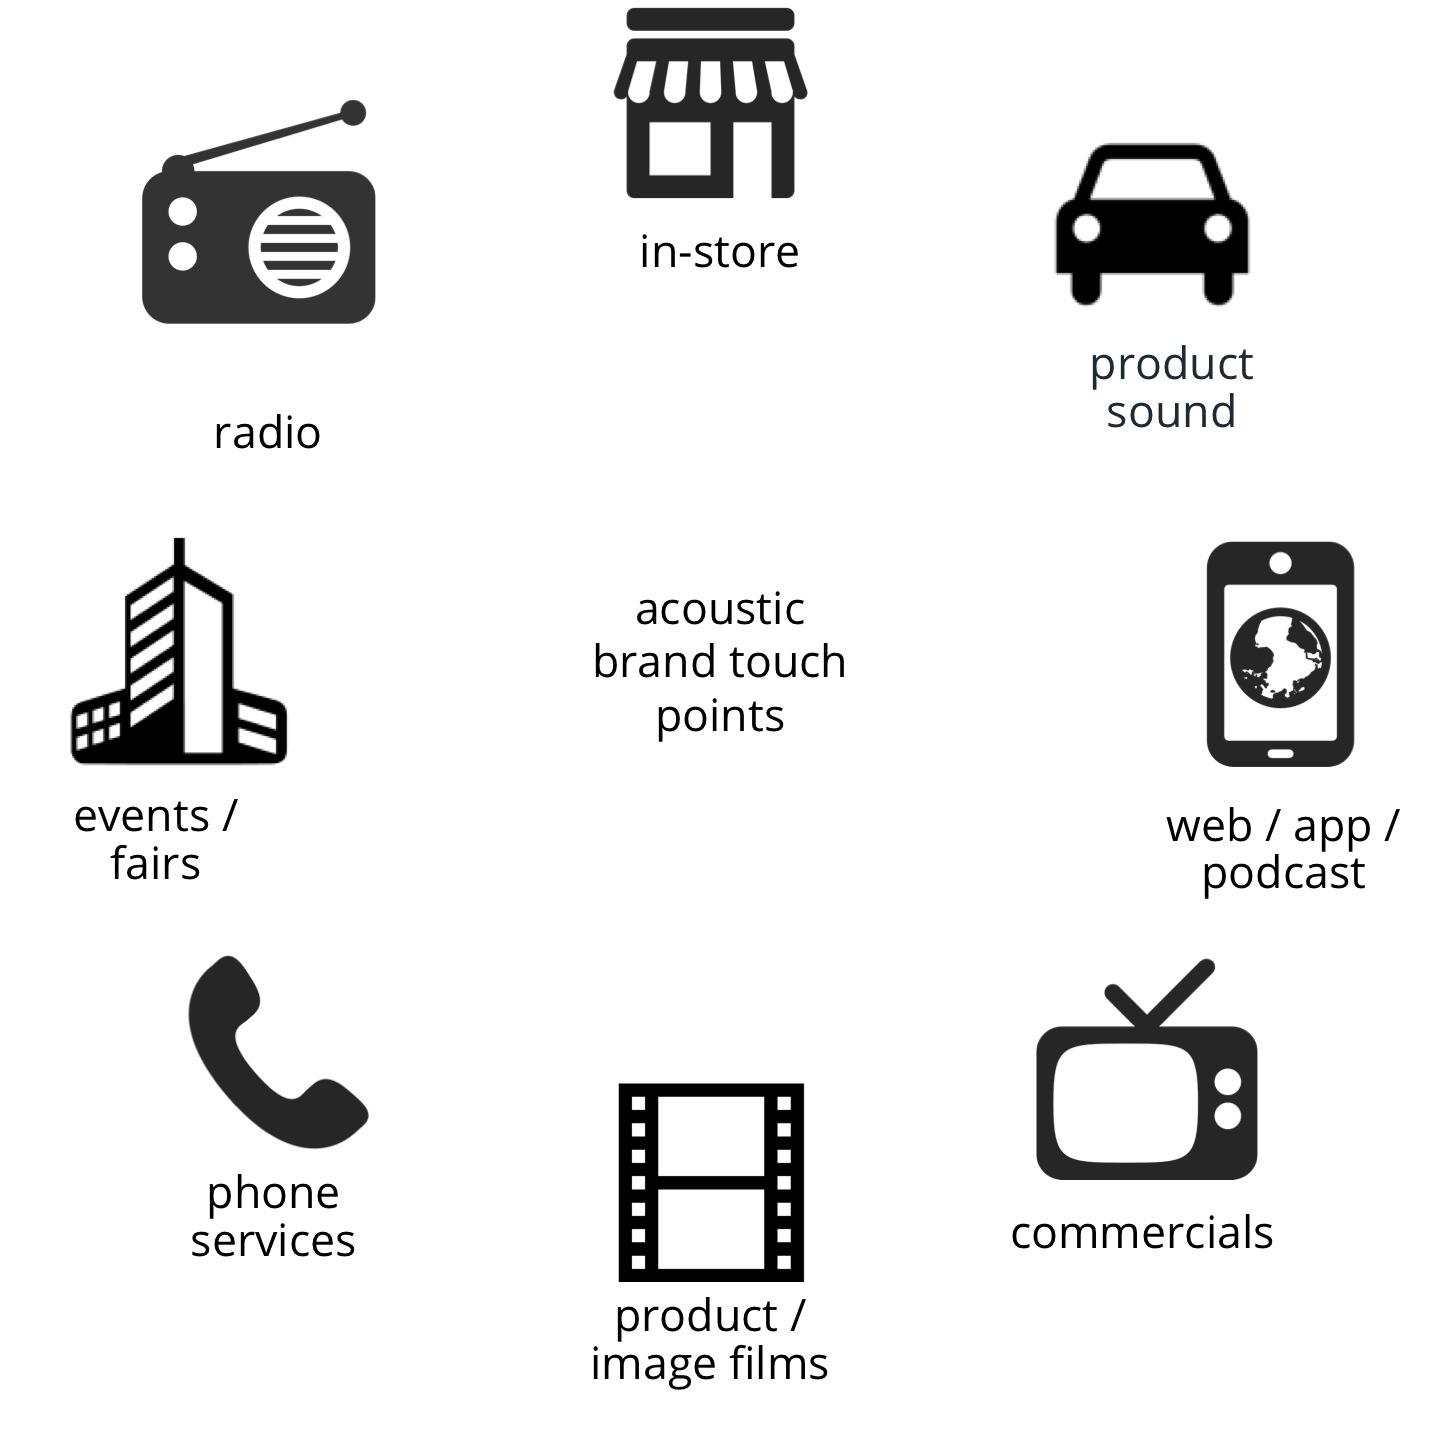 acoustic brand touch points